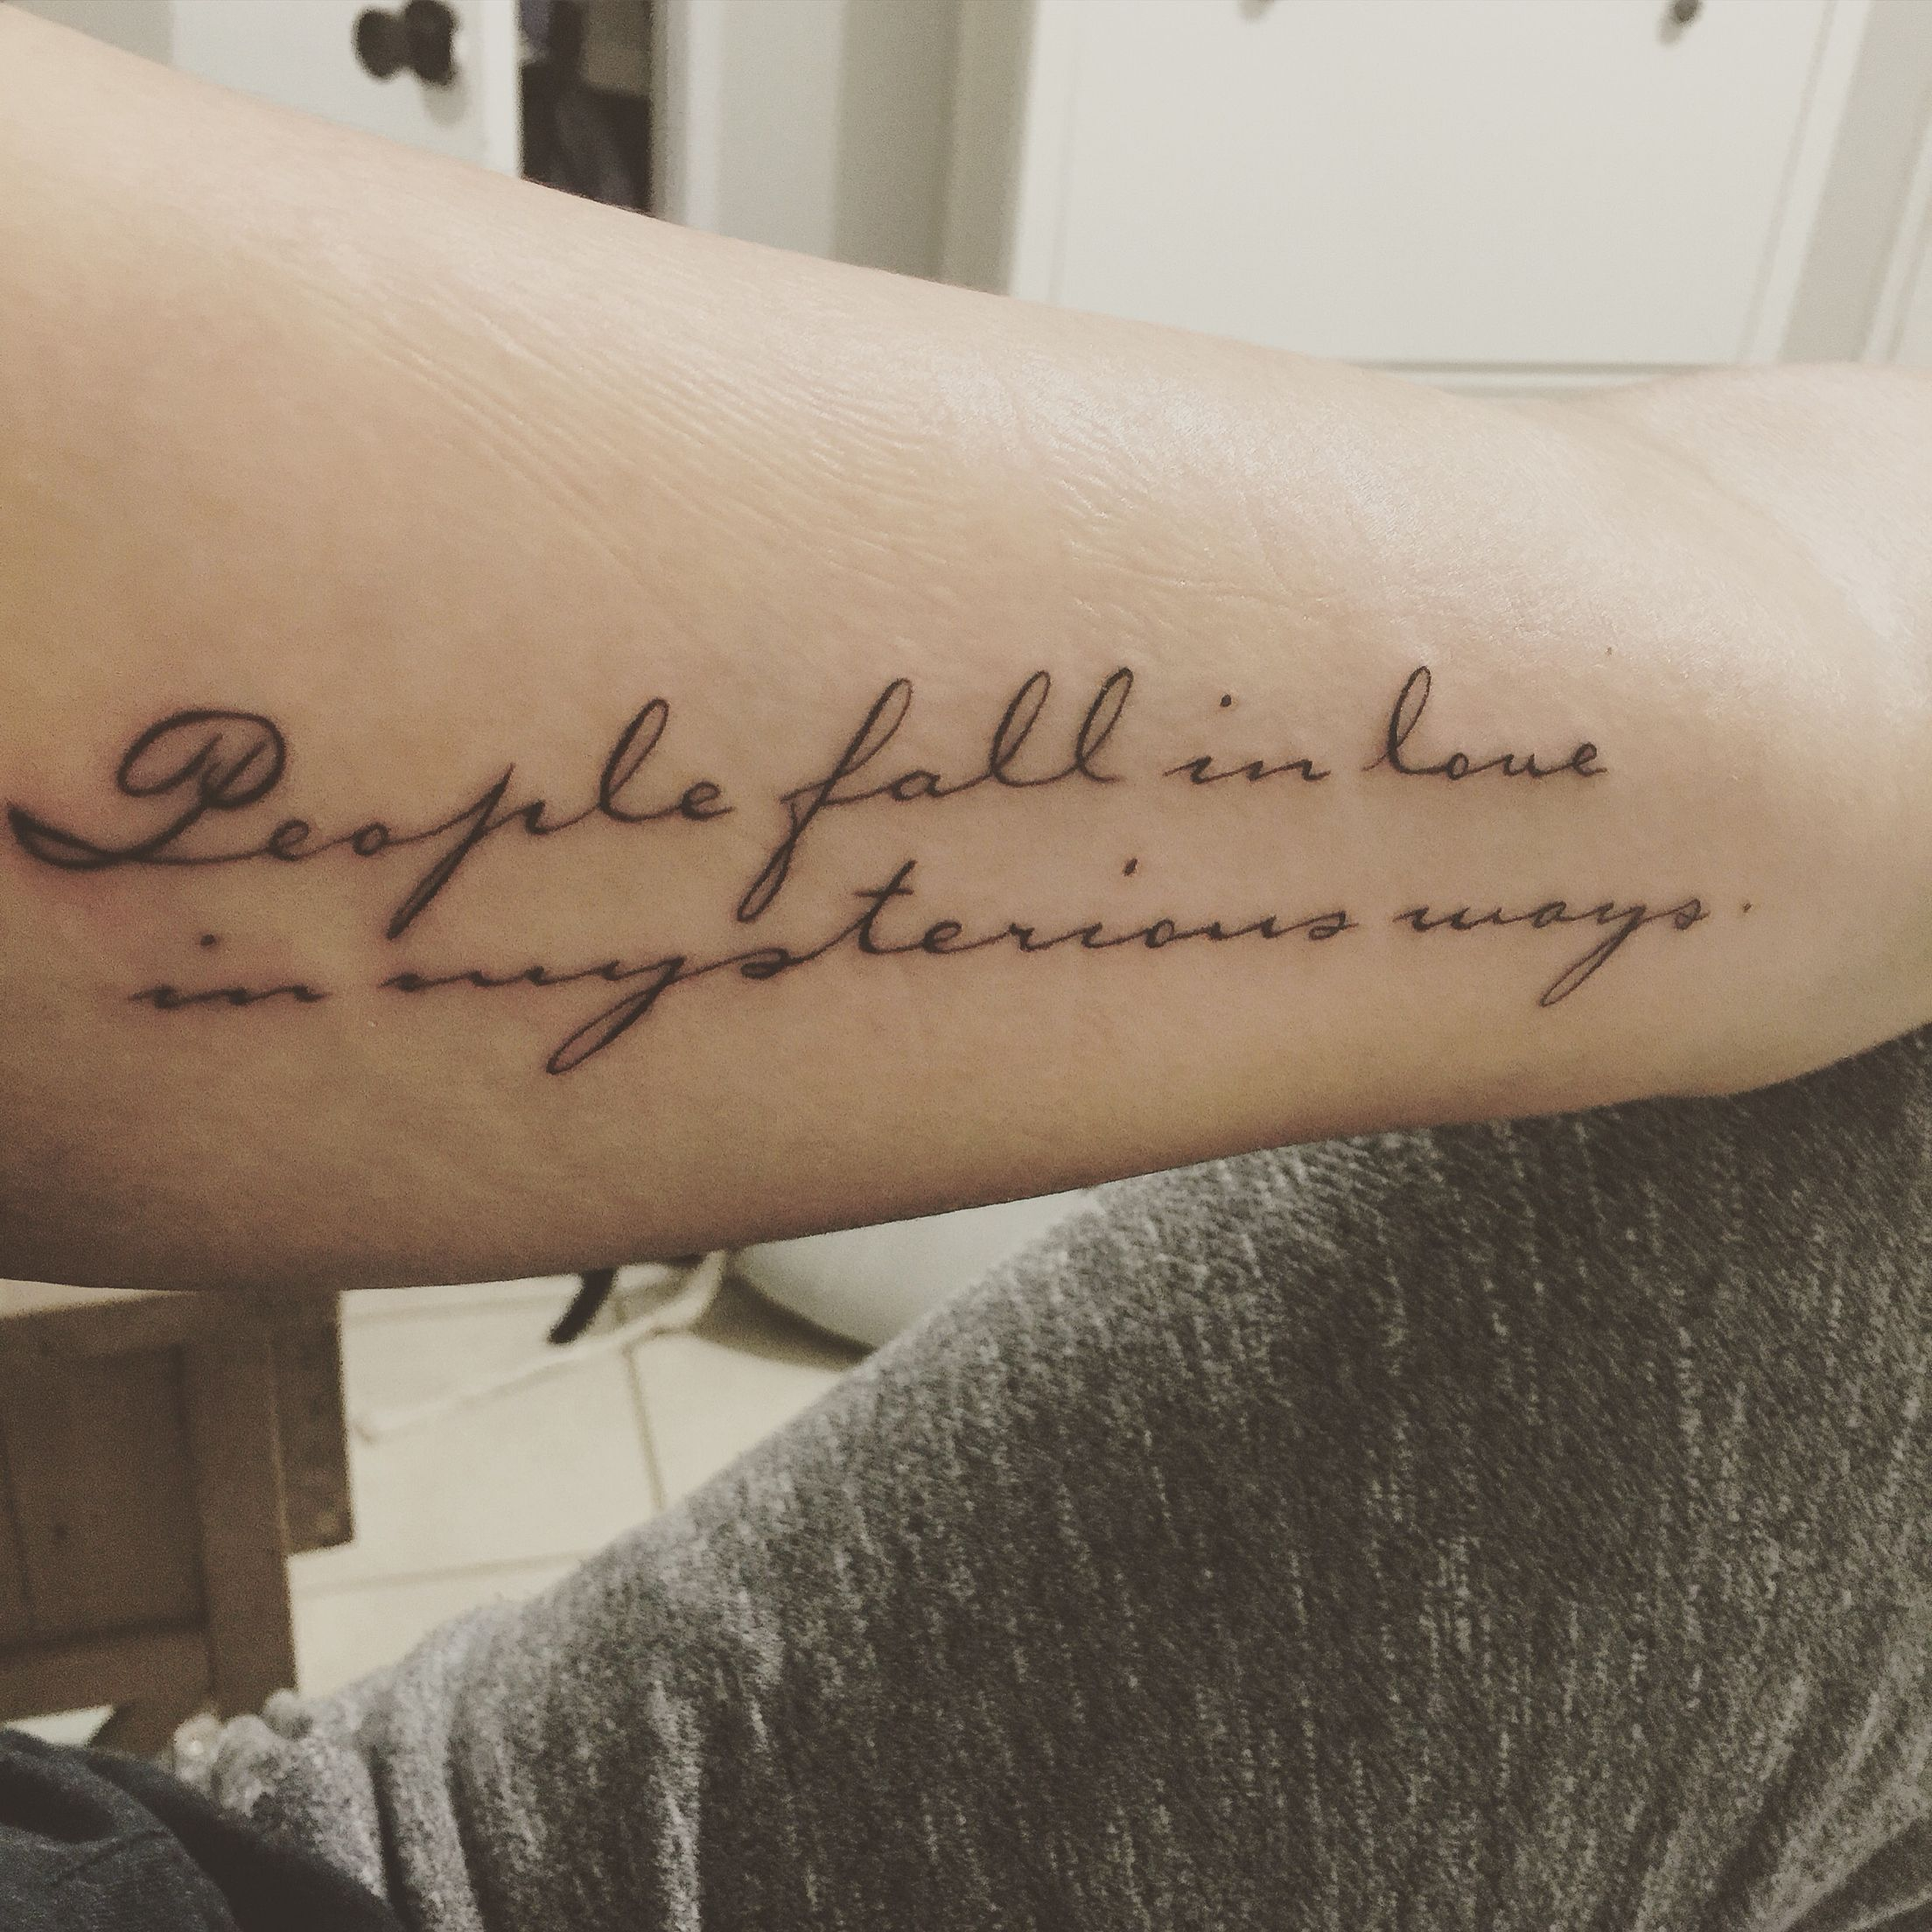 "Love Is Louder Tattoo: My Newest Tattoo ""People Fall In Love In Mysterious Ways"